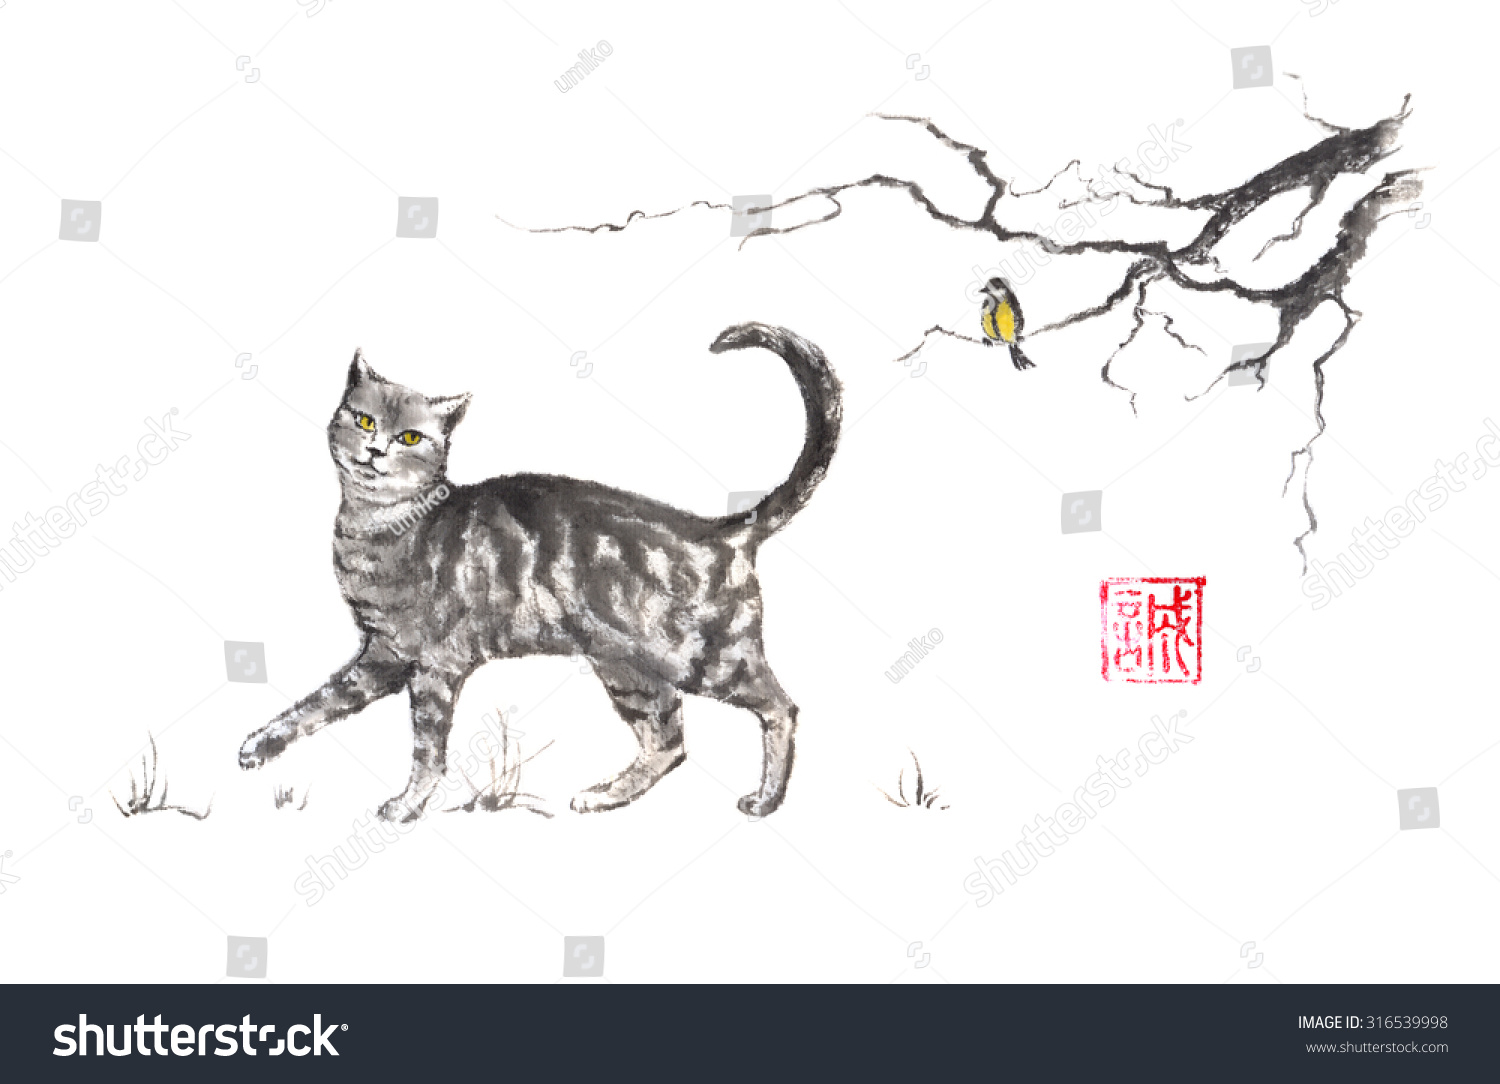 Cat Stock Quote Cat Stock Quote  Best Cat And Kitten Image And Photo Hd 2017